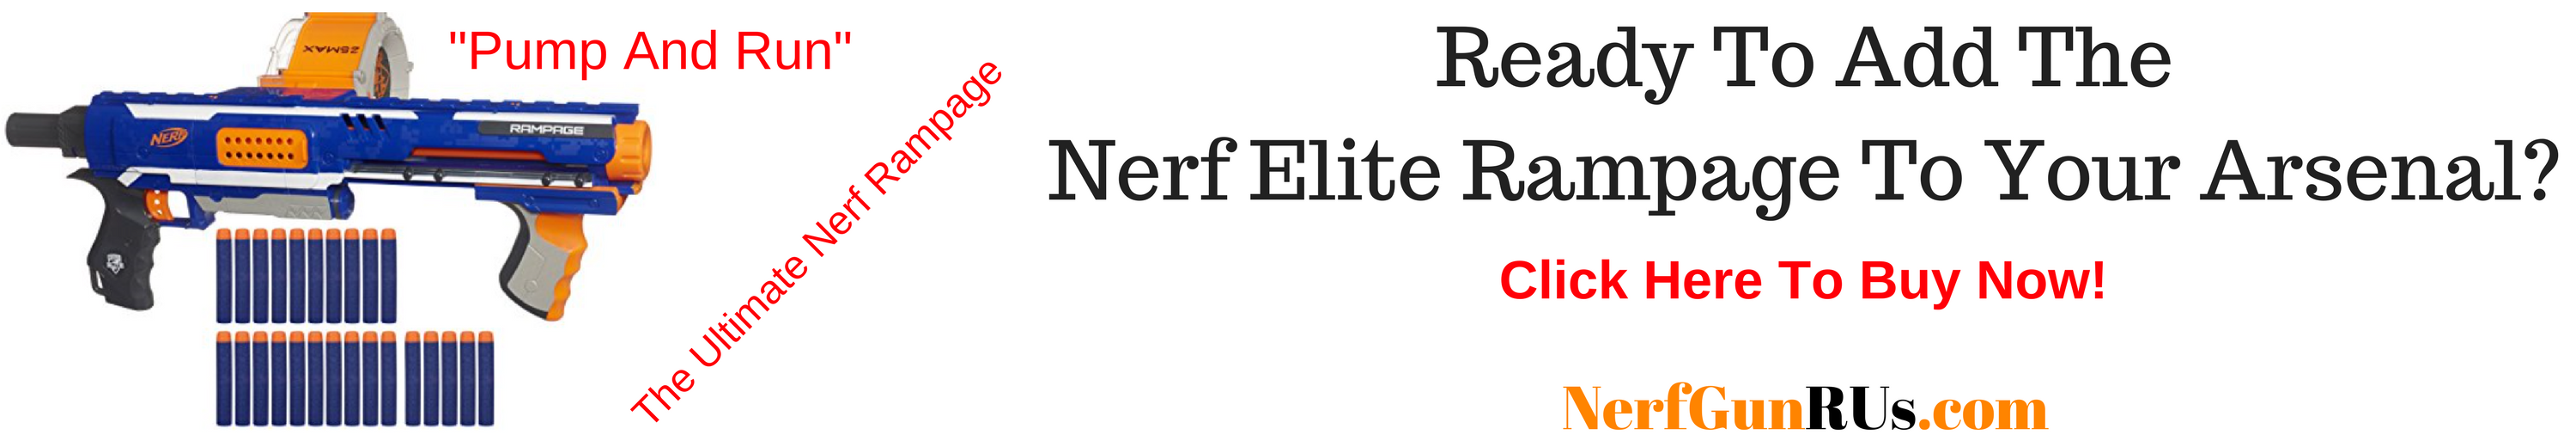 Ready To Add The Nerf Elite Rampage To Your Arsenal | NerfGunRUs.com